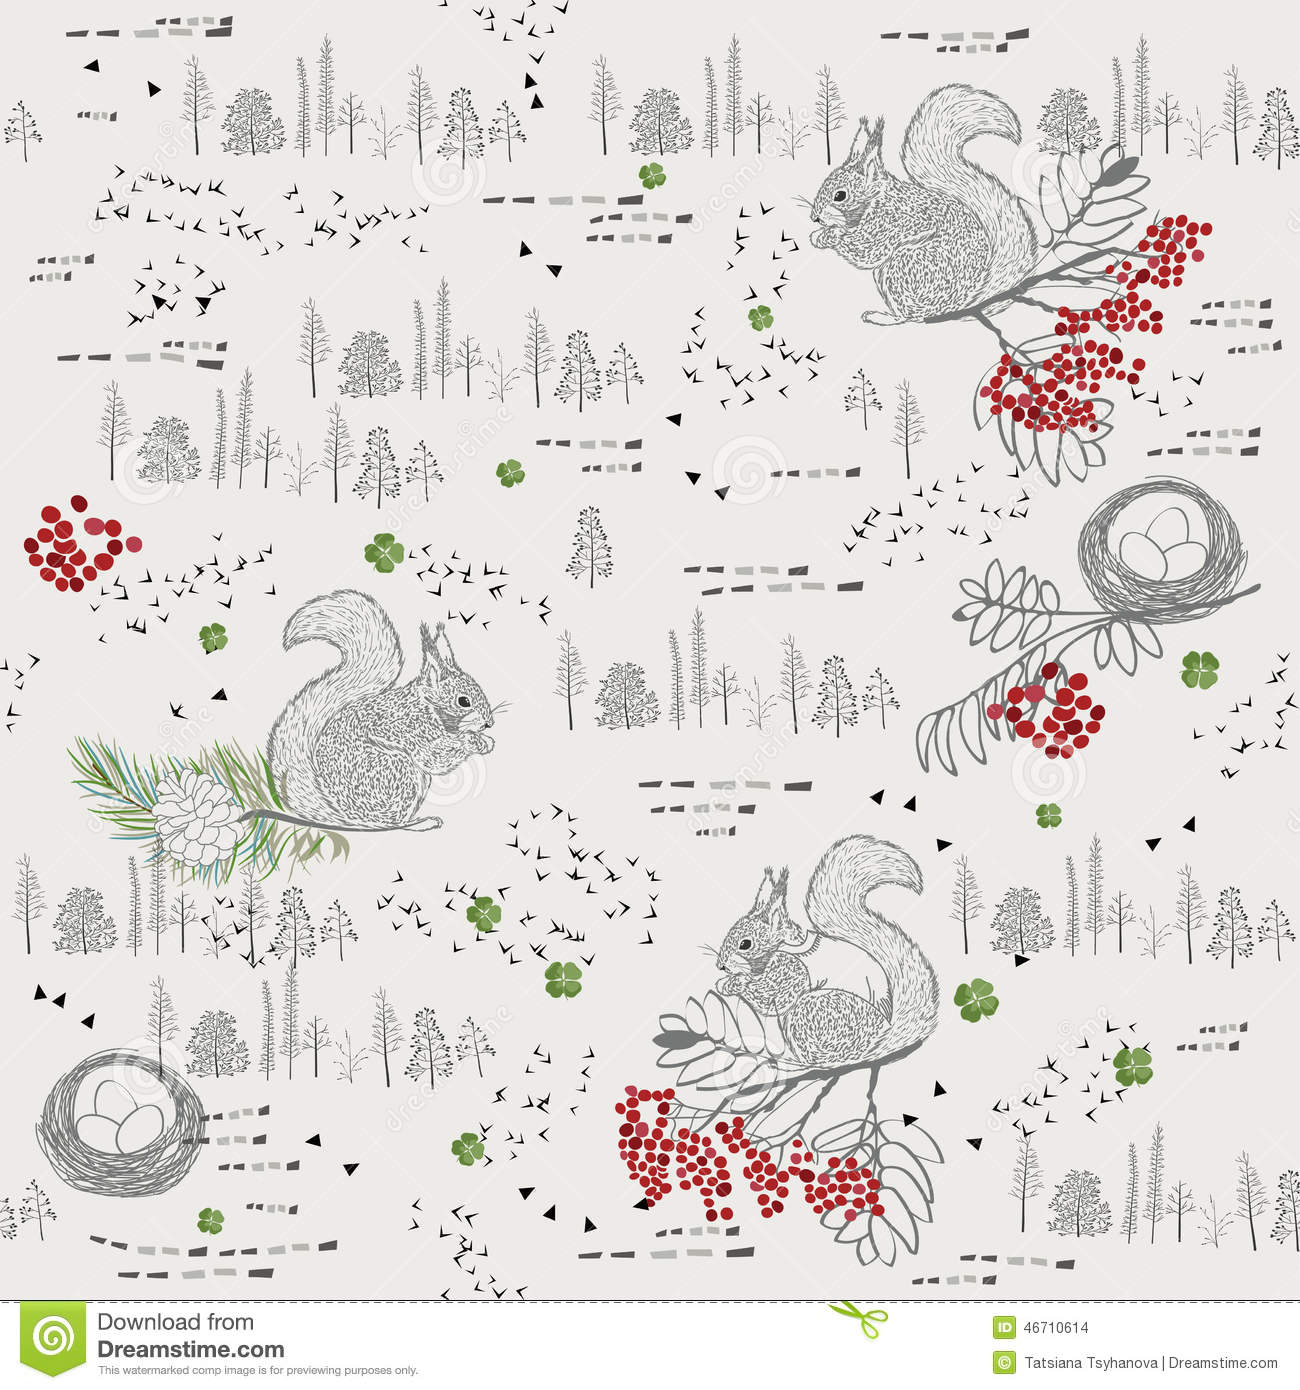 Seamless pattern with trees, shrubs, foliage, animals on light background in vintage style.